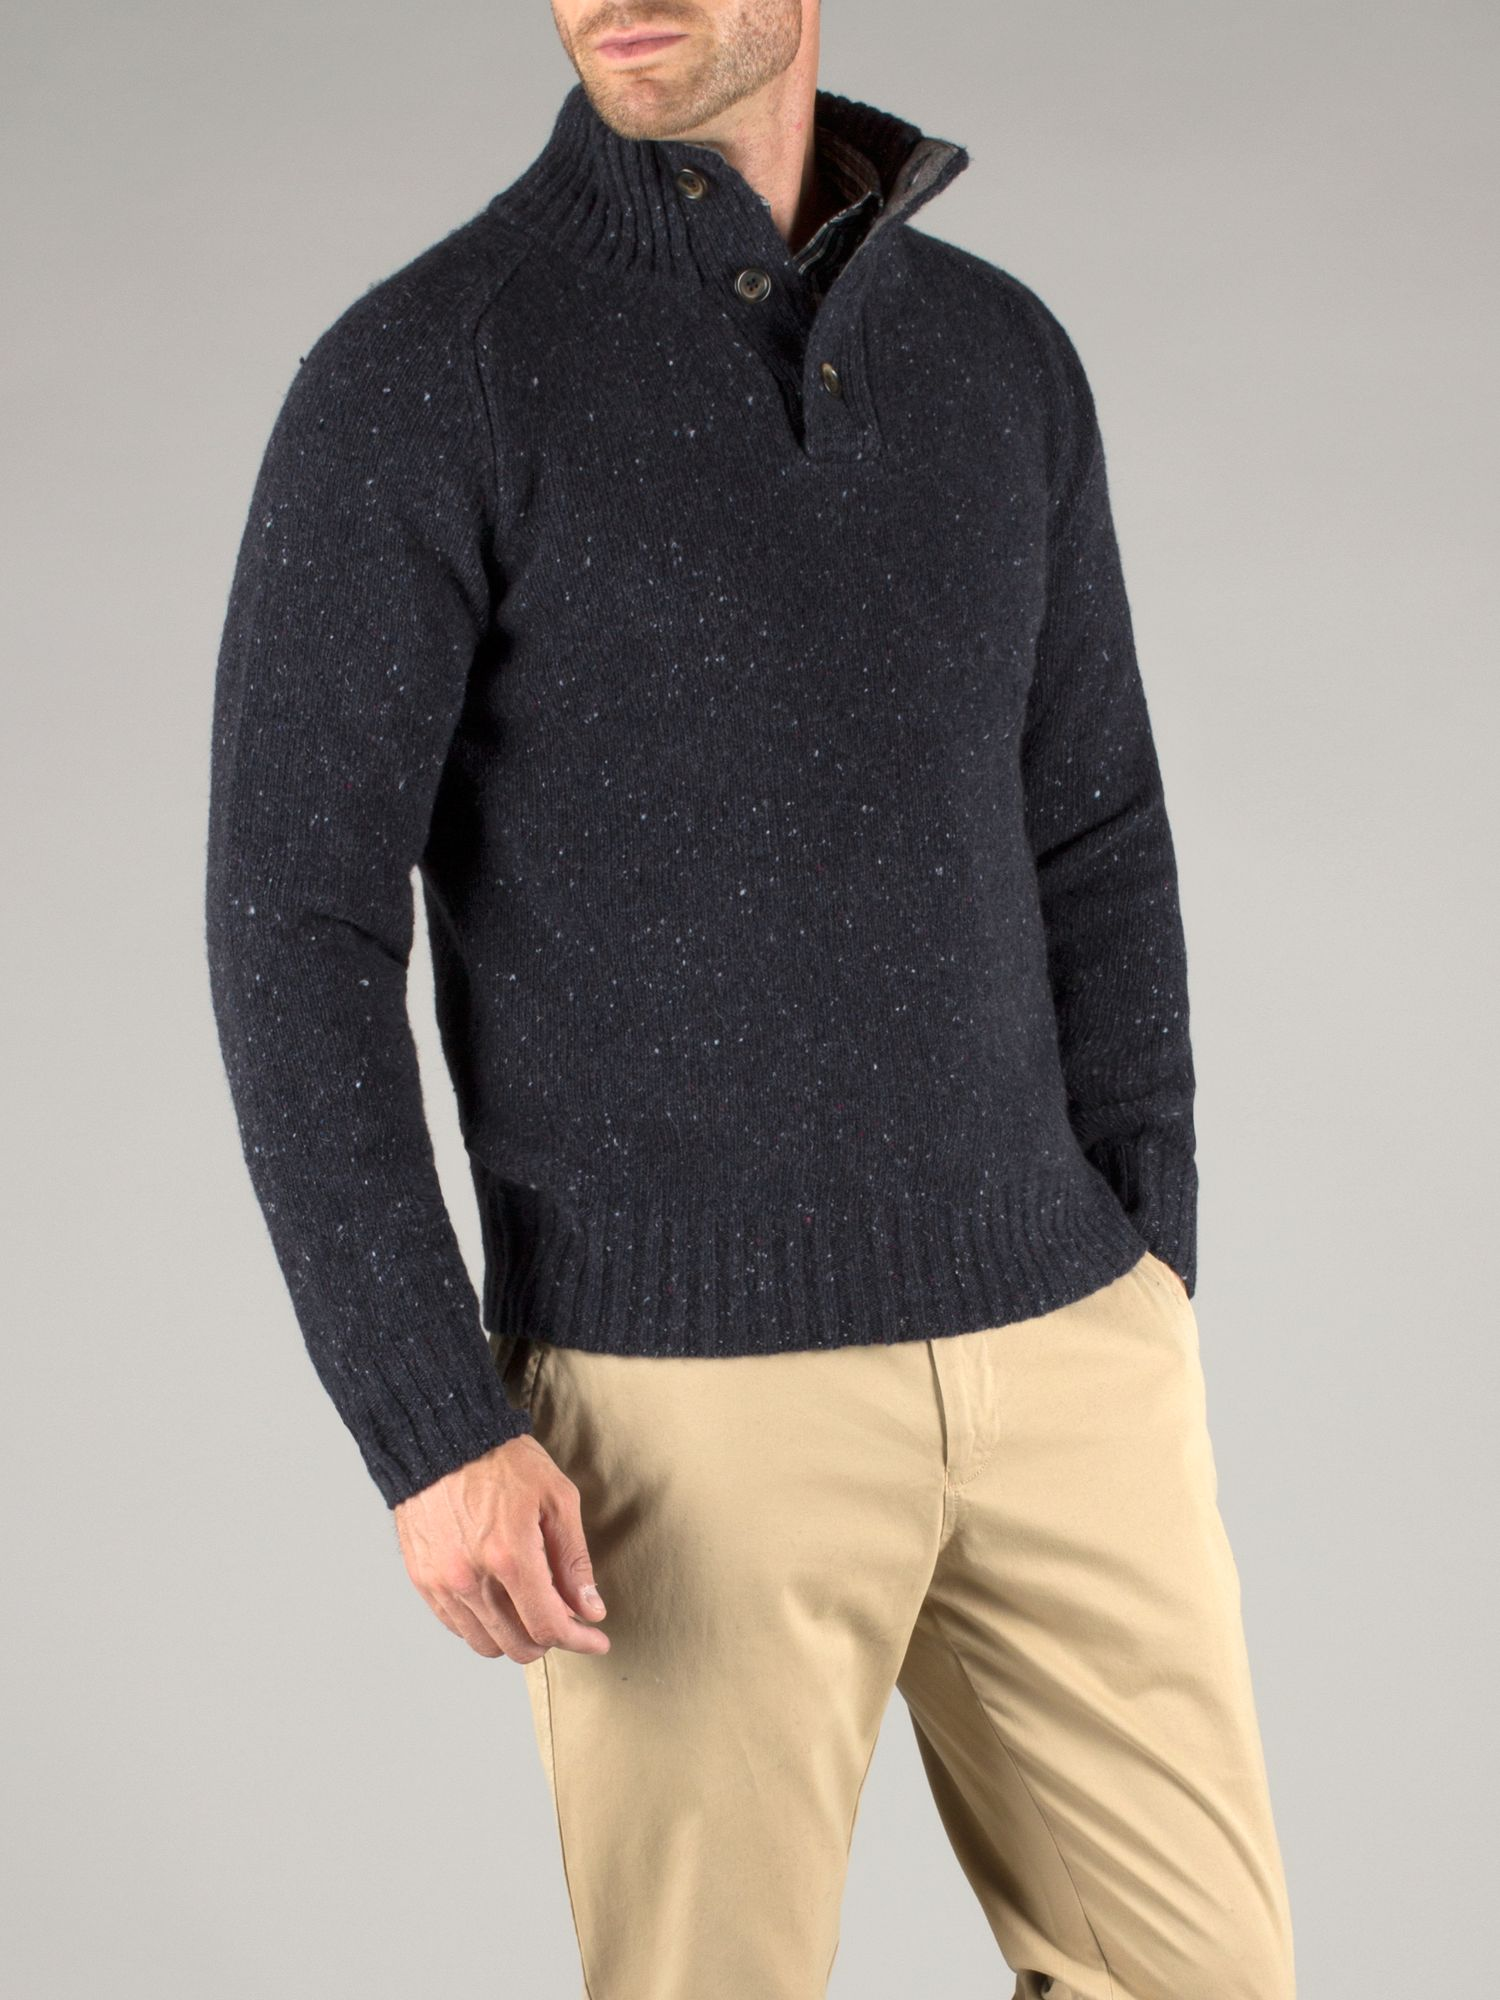 Carter button neck nep knit